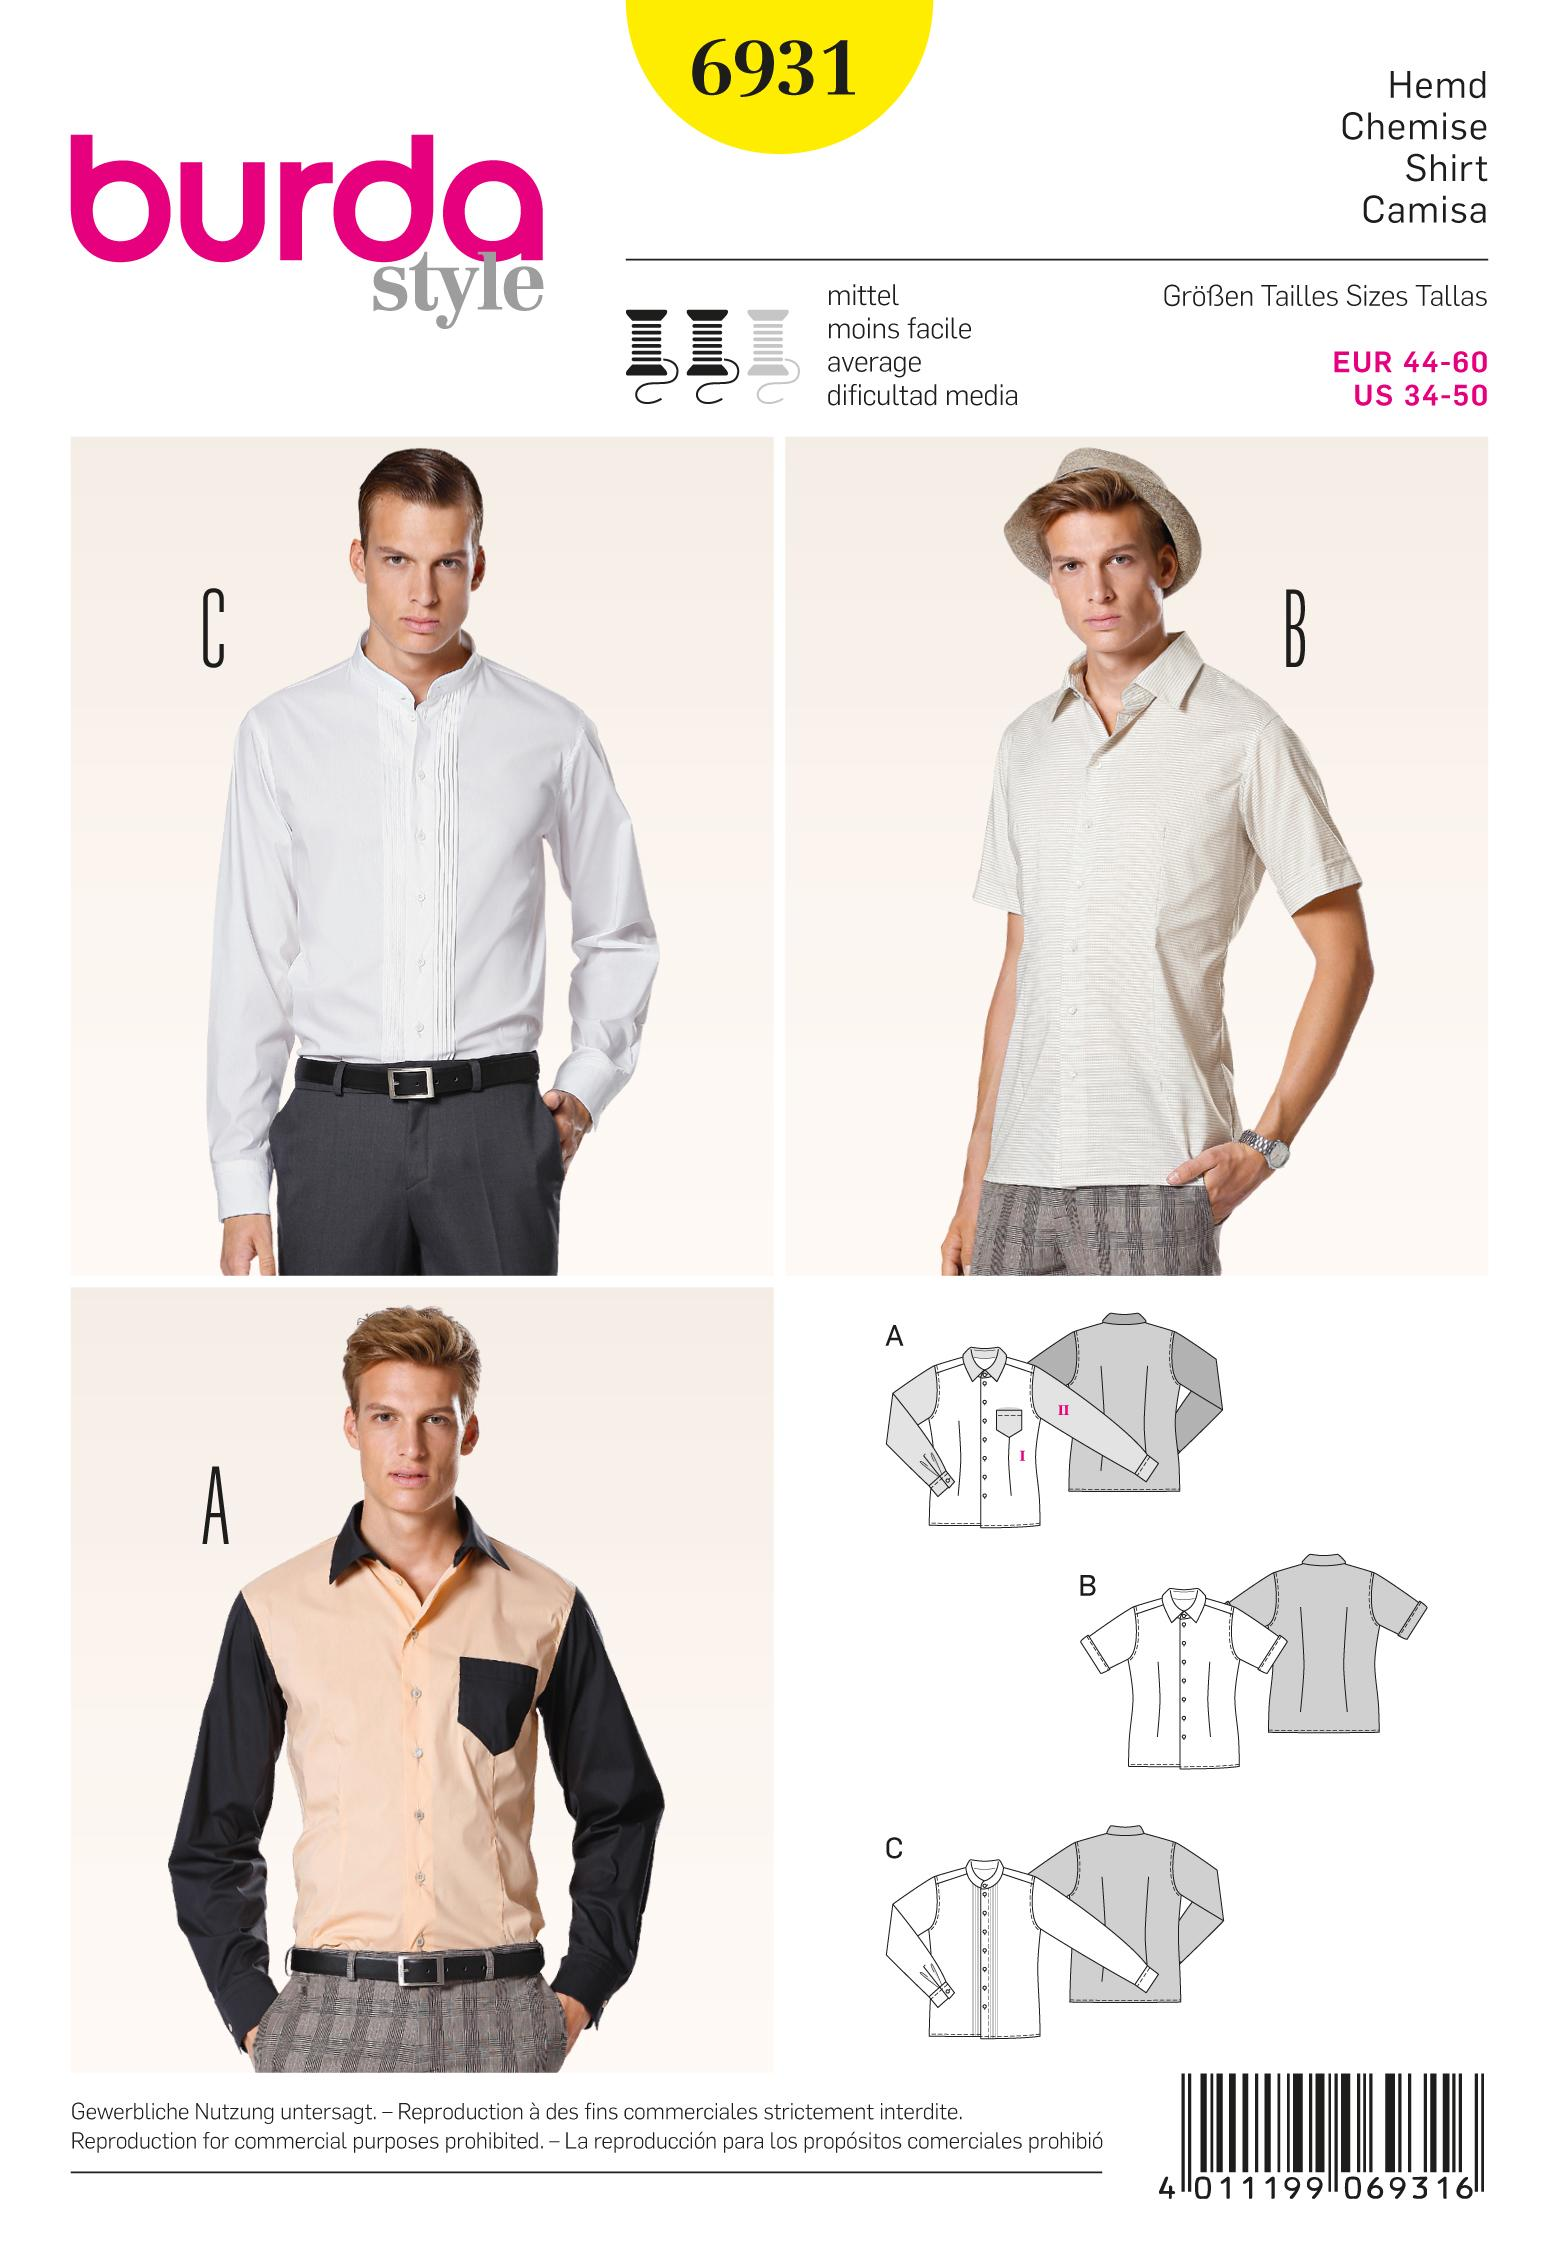 Burda B6931 Burda Menswear Sewing Pattern